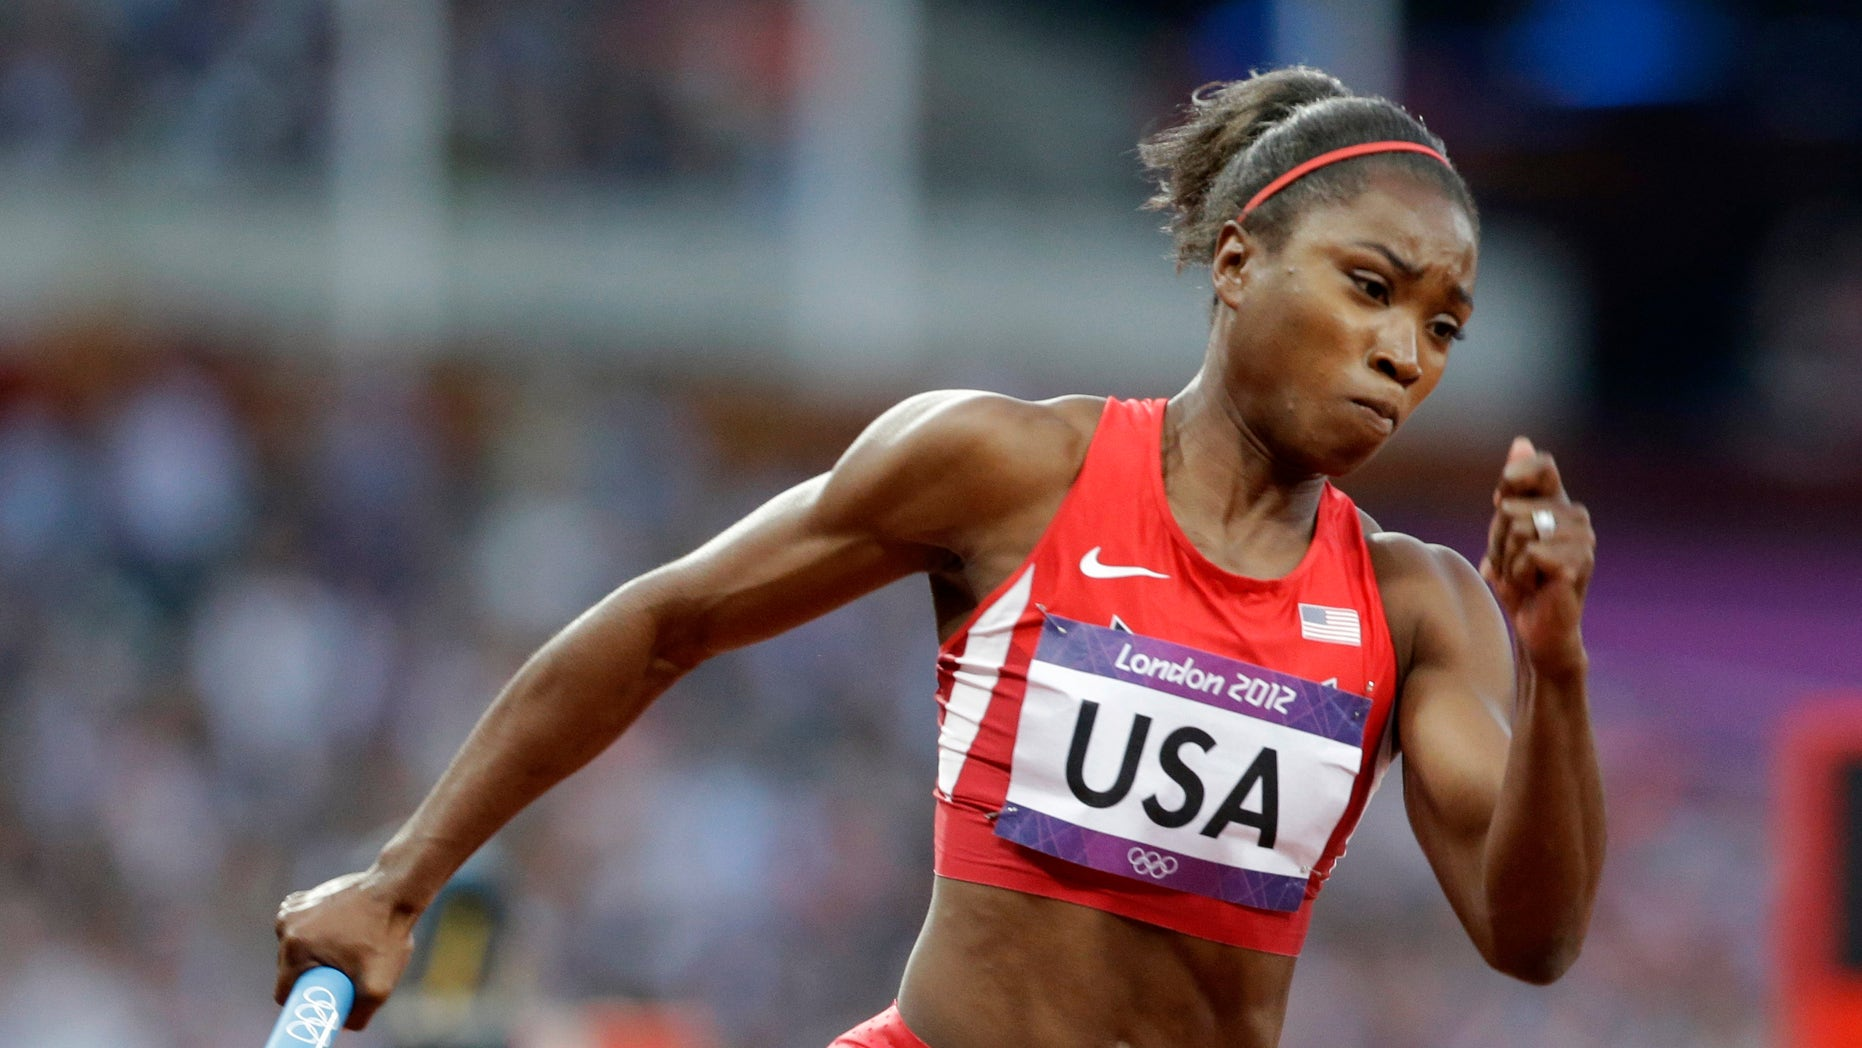 Aug. 9, 2012: In this file photo, United States' Tianna Madison runs in the first leg of the women's 400-meter relay heat at the Summer Olympics in London.